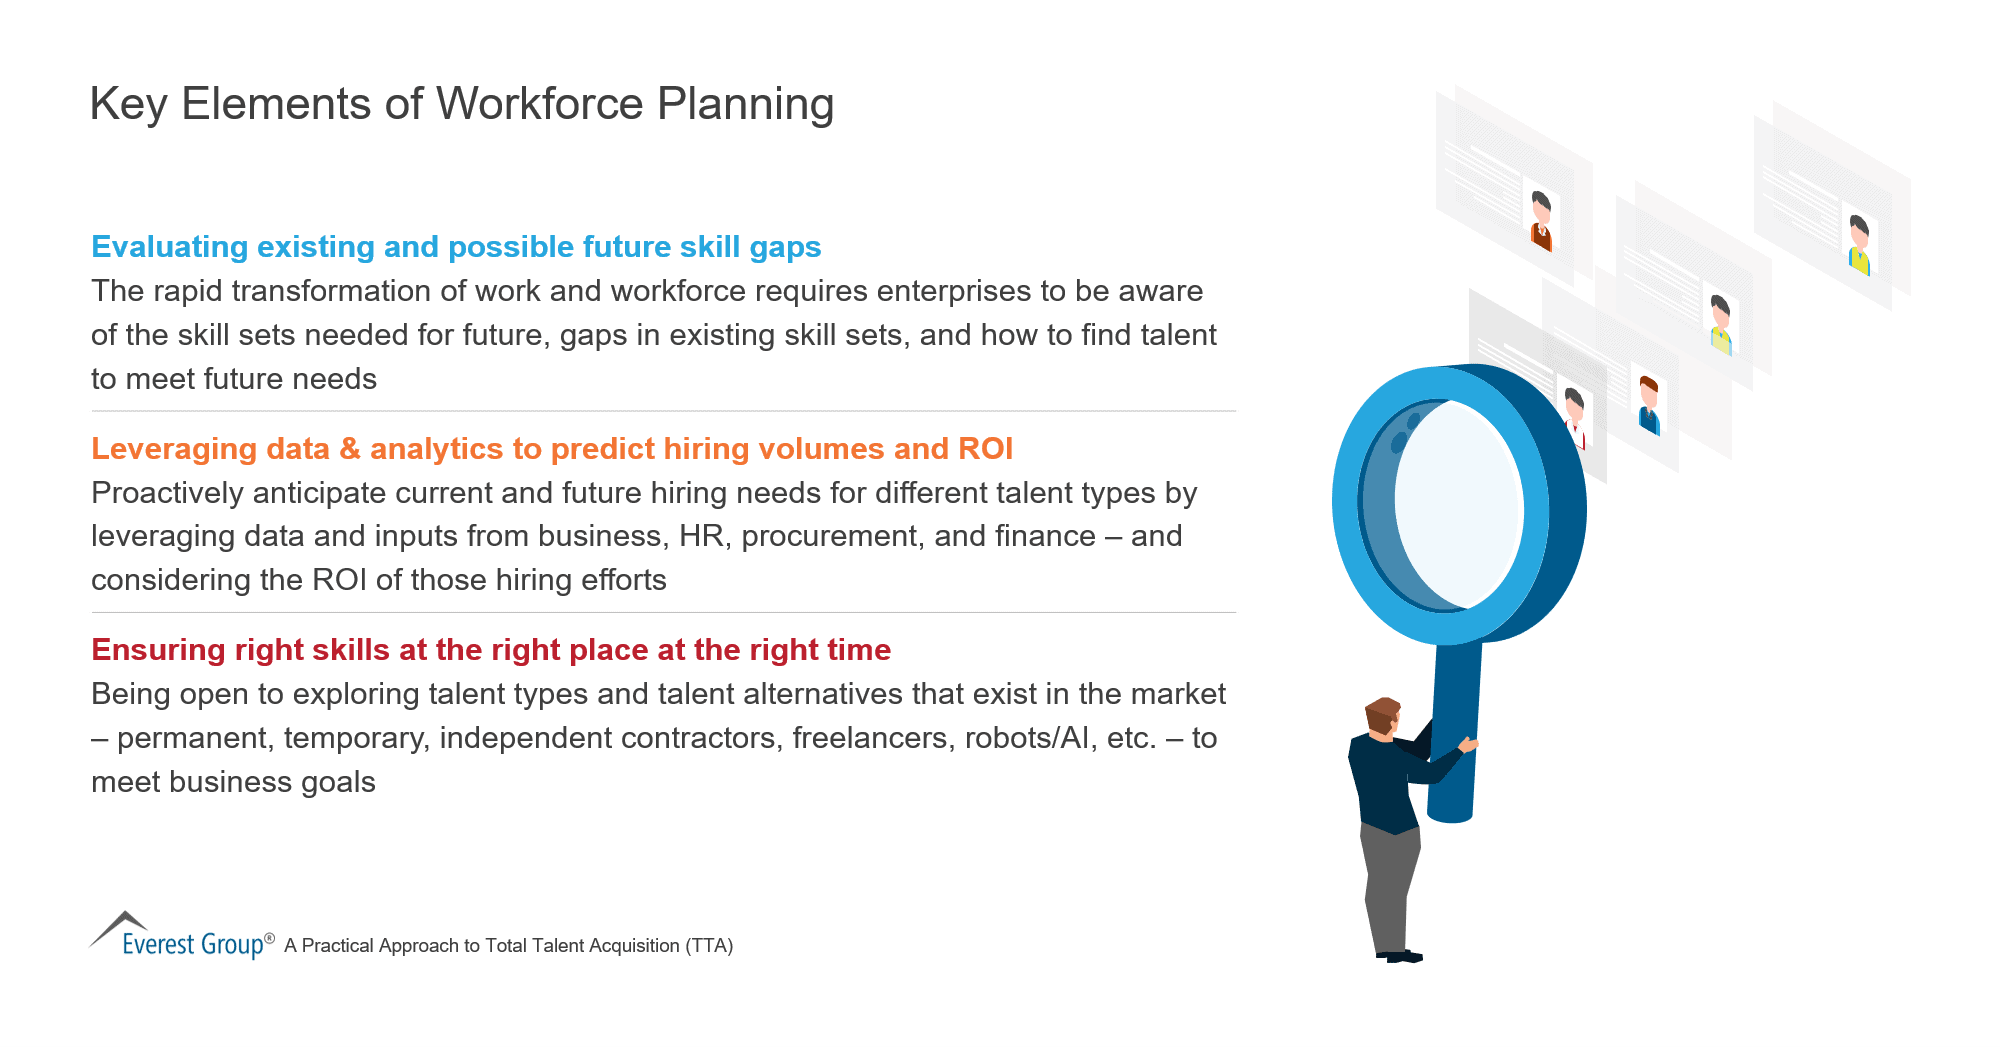 Key Elements of Workforce Planning